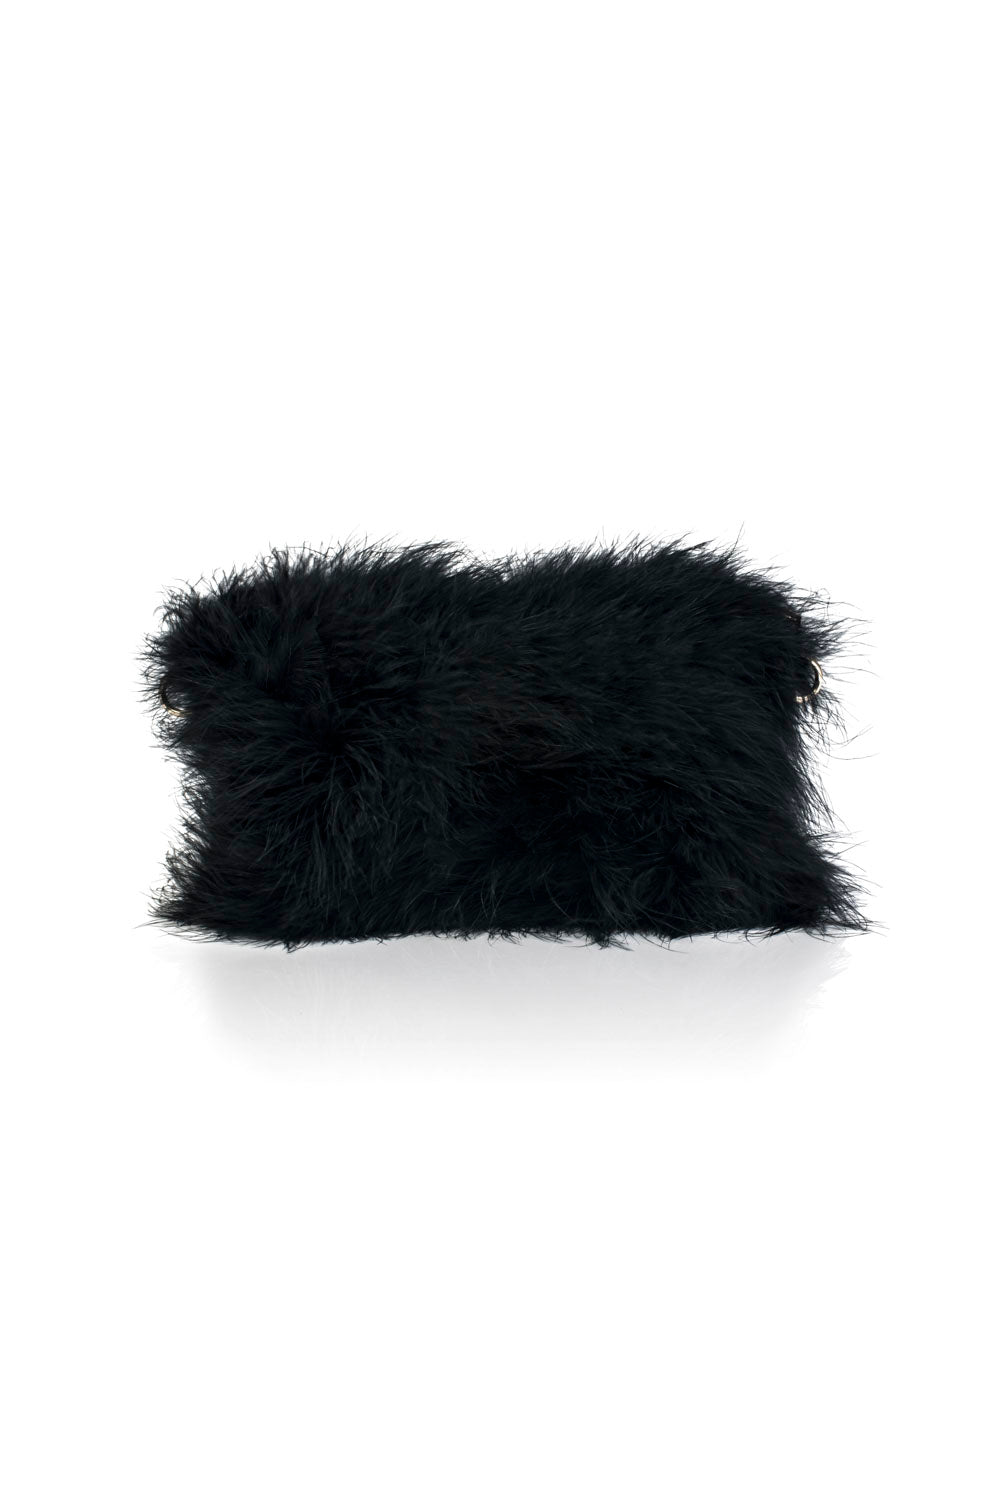 GV1 Feather Bag - Black